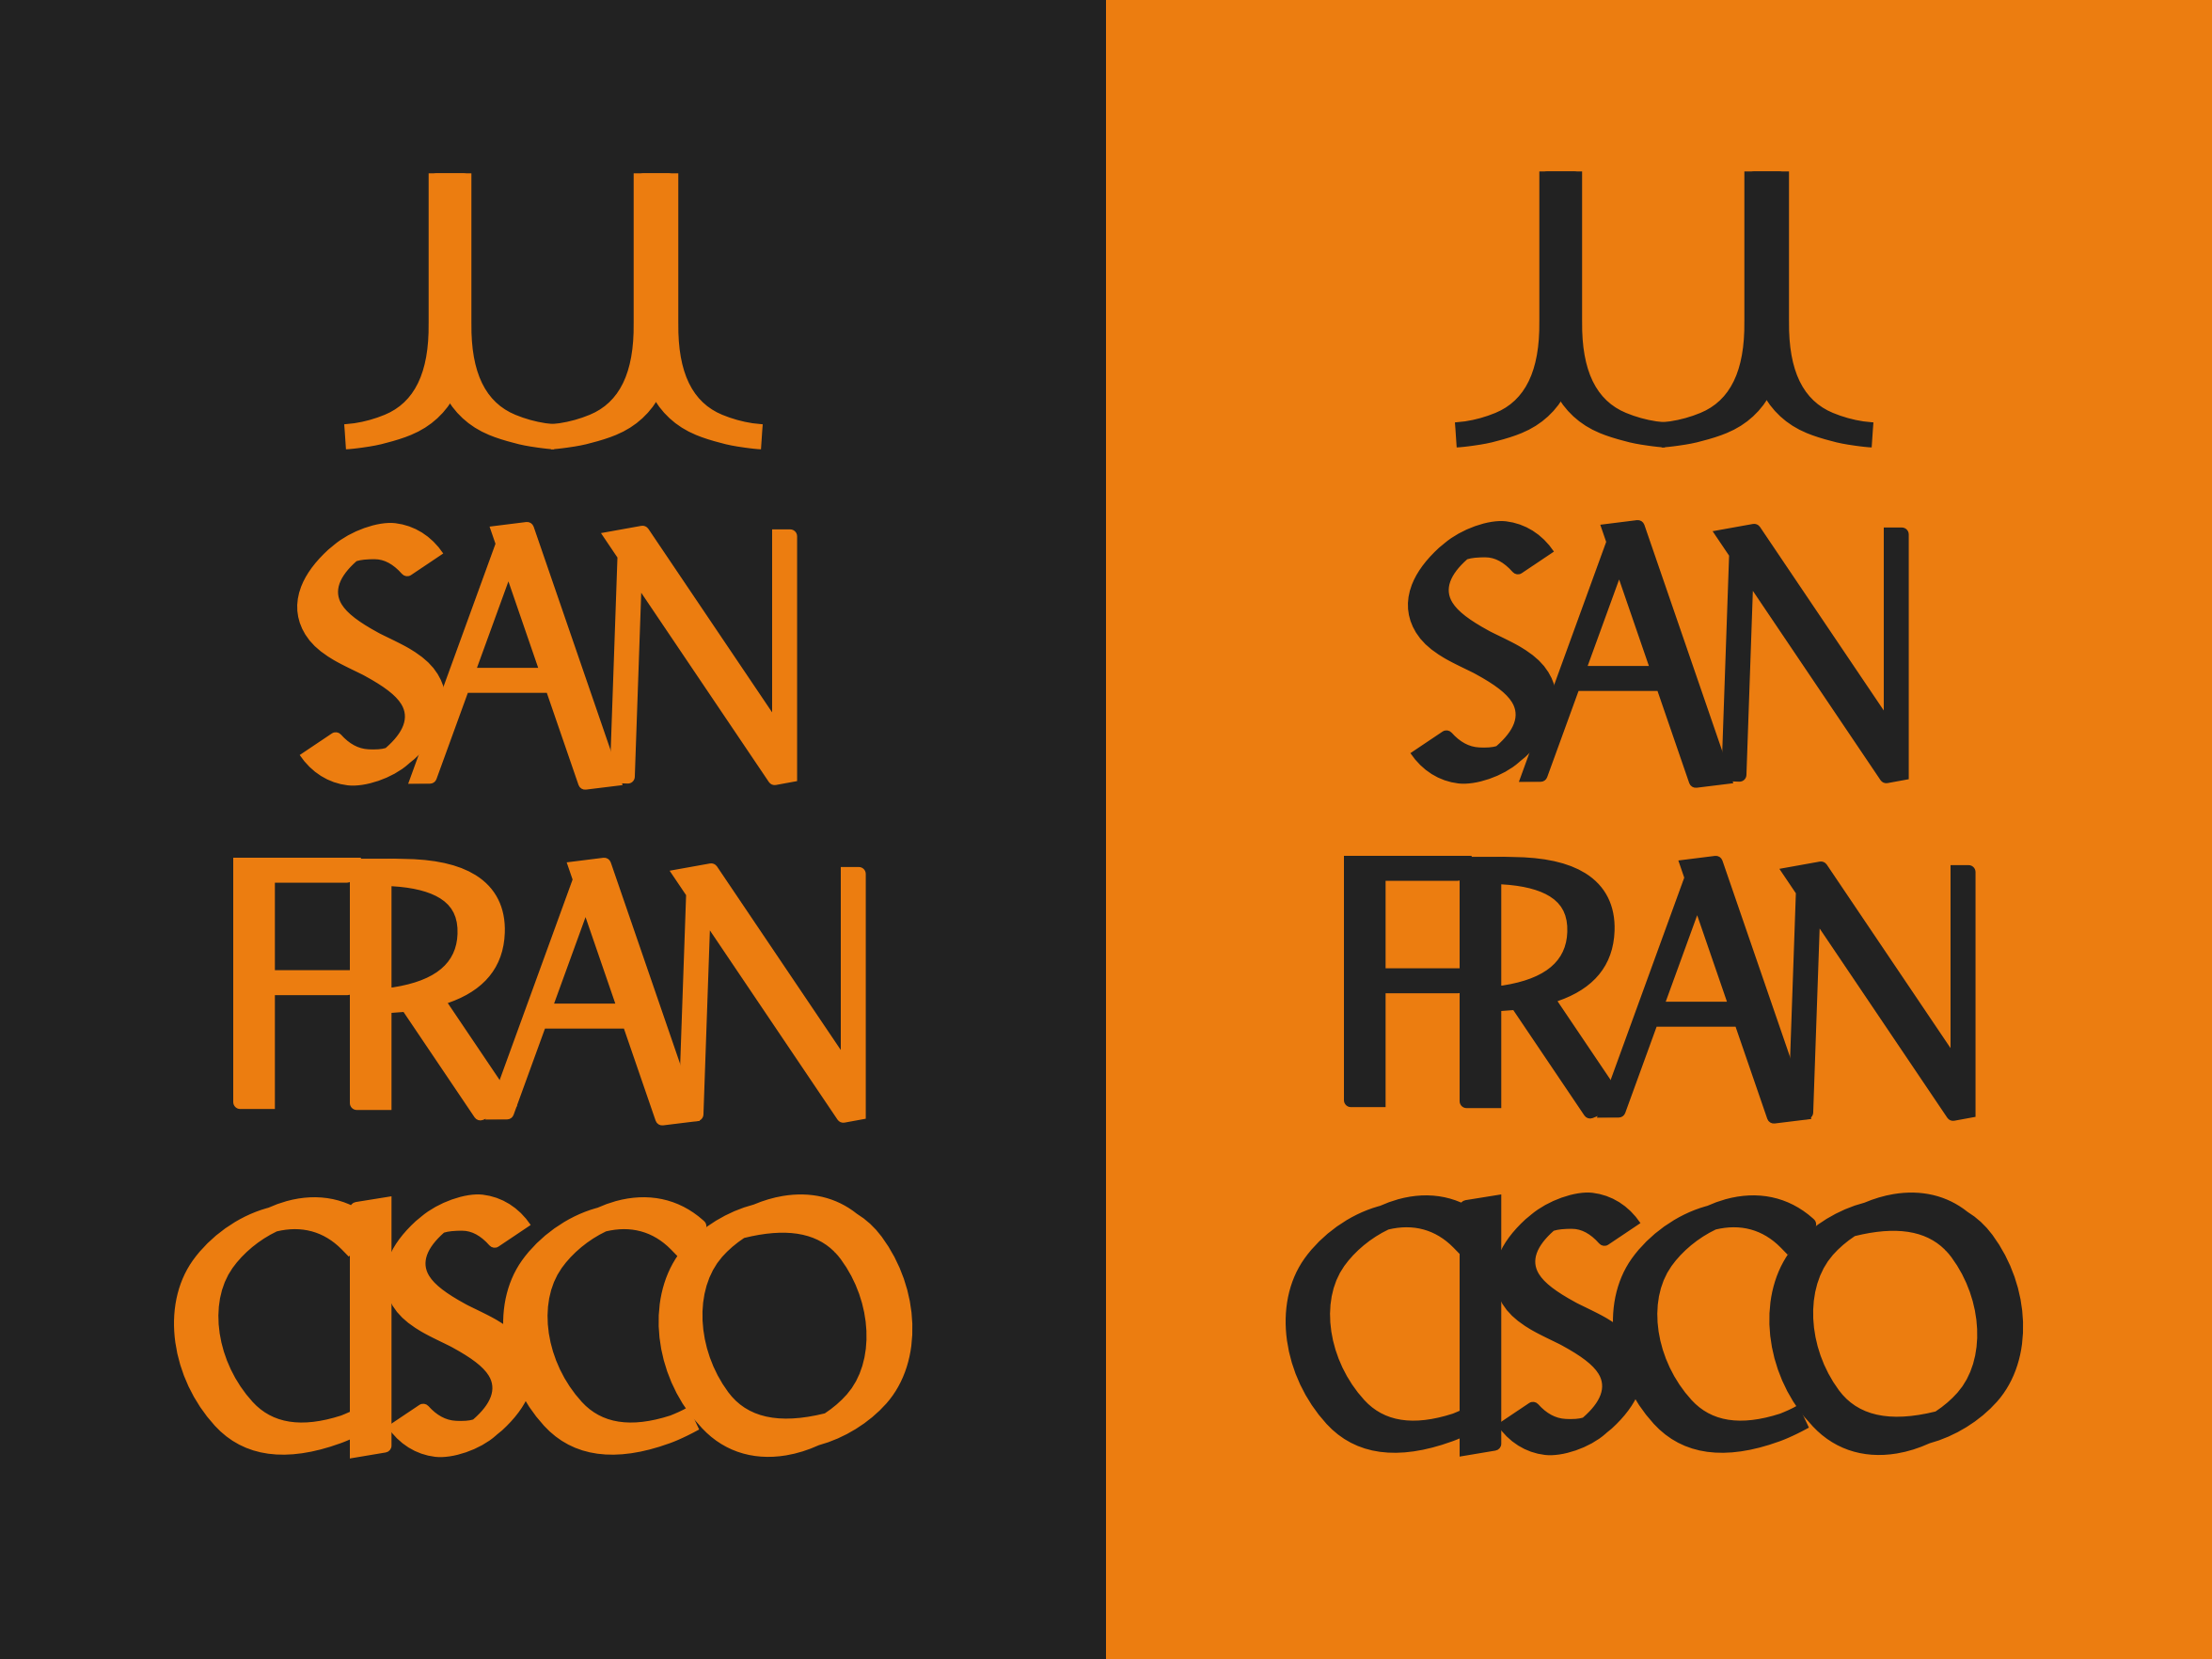 San Fran, with a nod to the golden gate made from J's